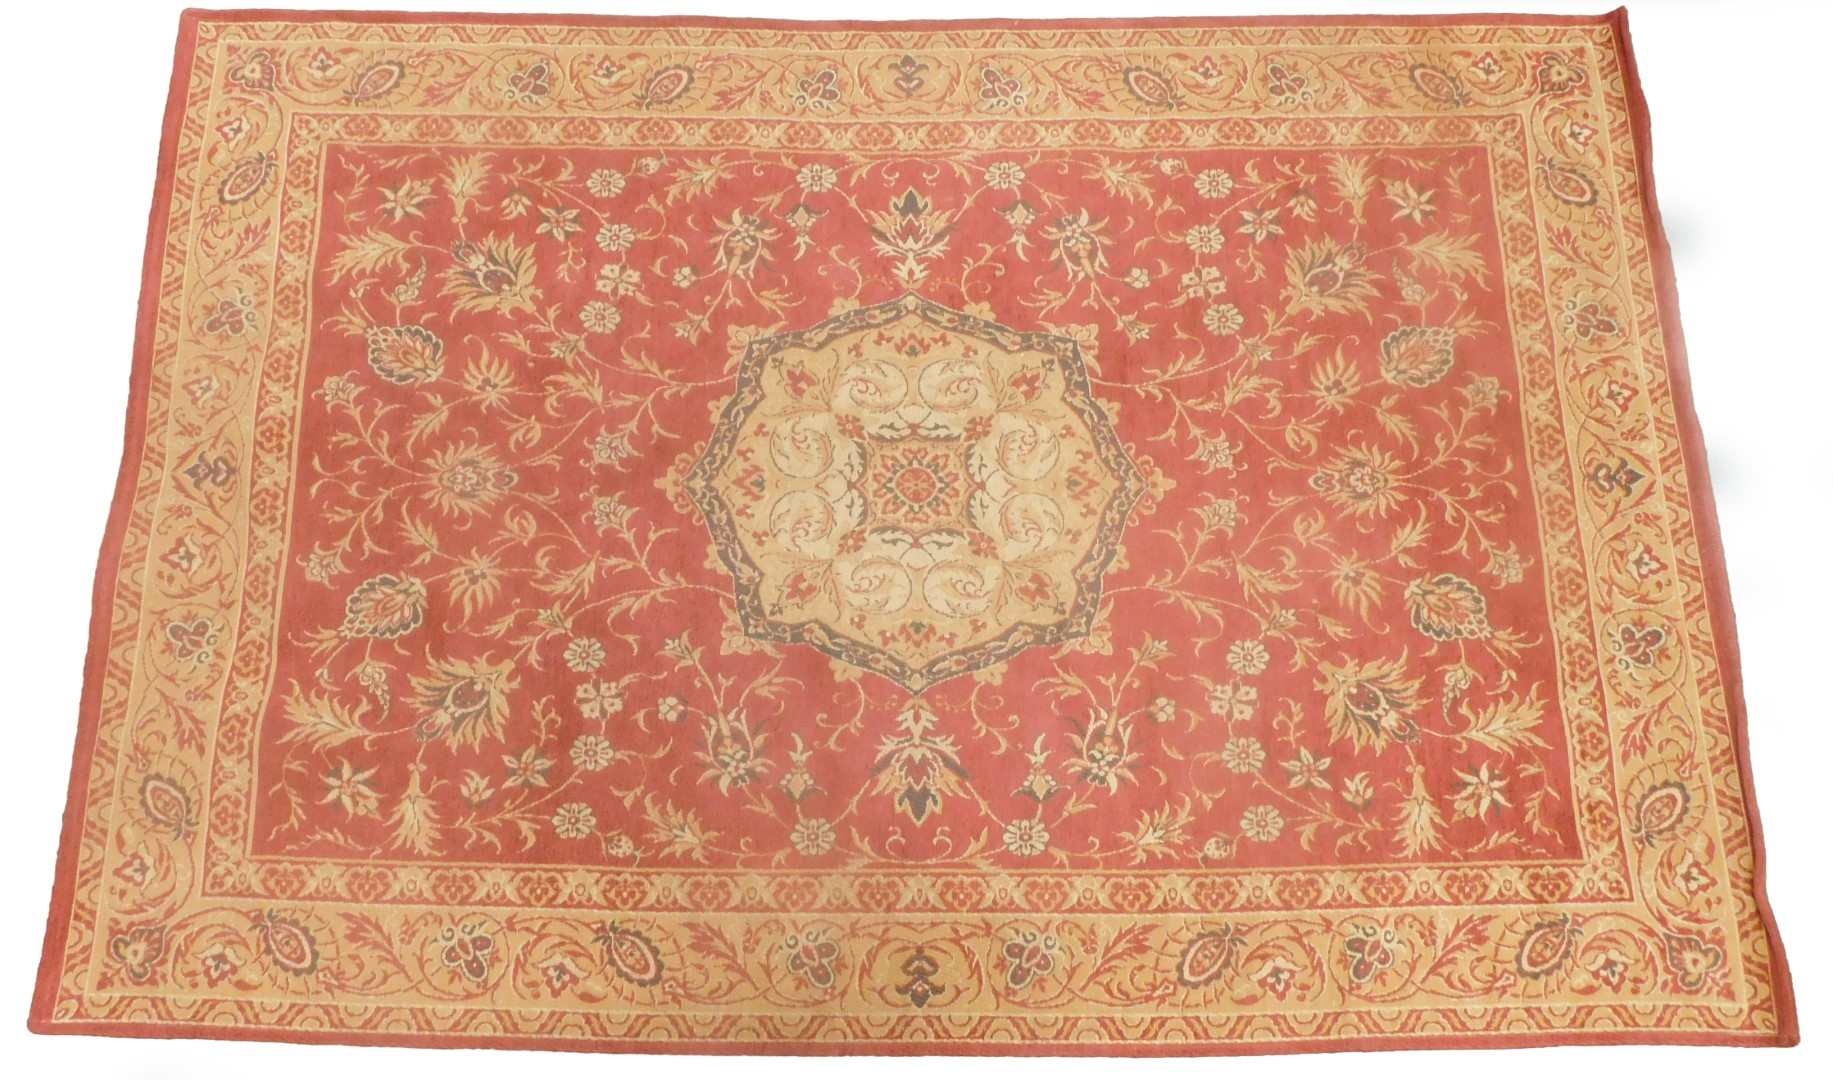 A Laura Ashley Belgian cotton rug, on a red ground.